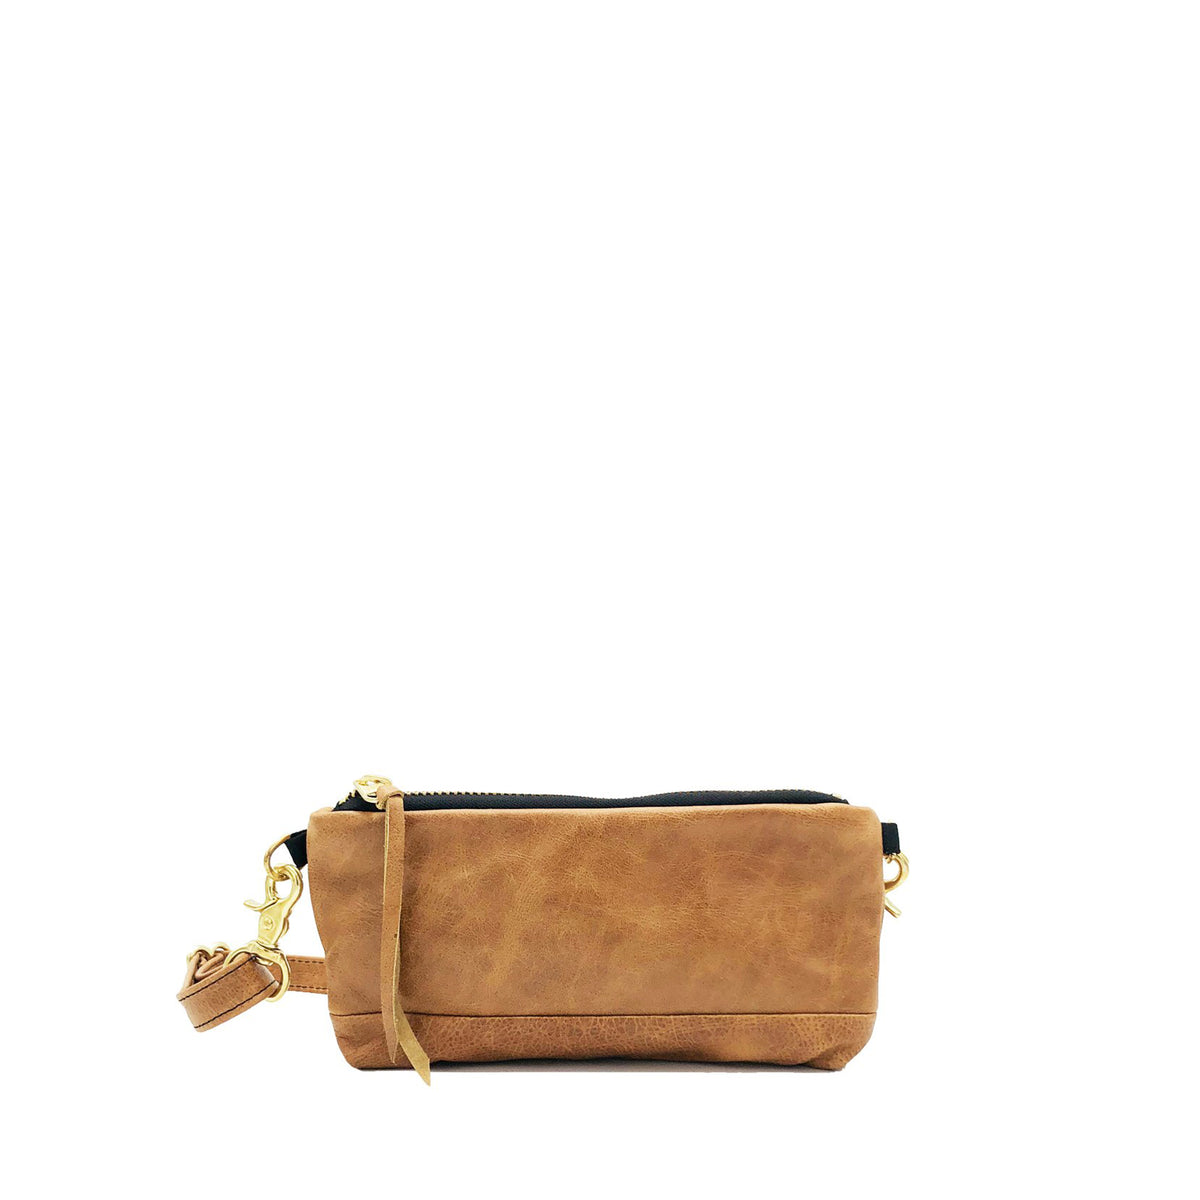 The Mini Vida Fanny Pack - Koko